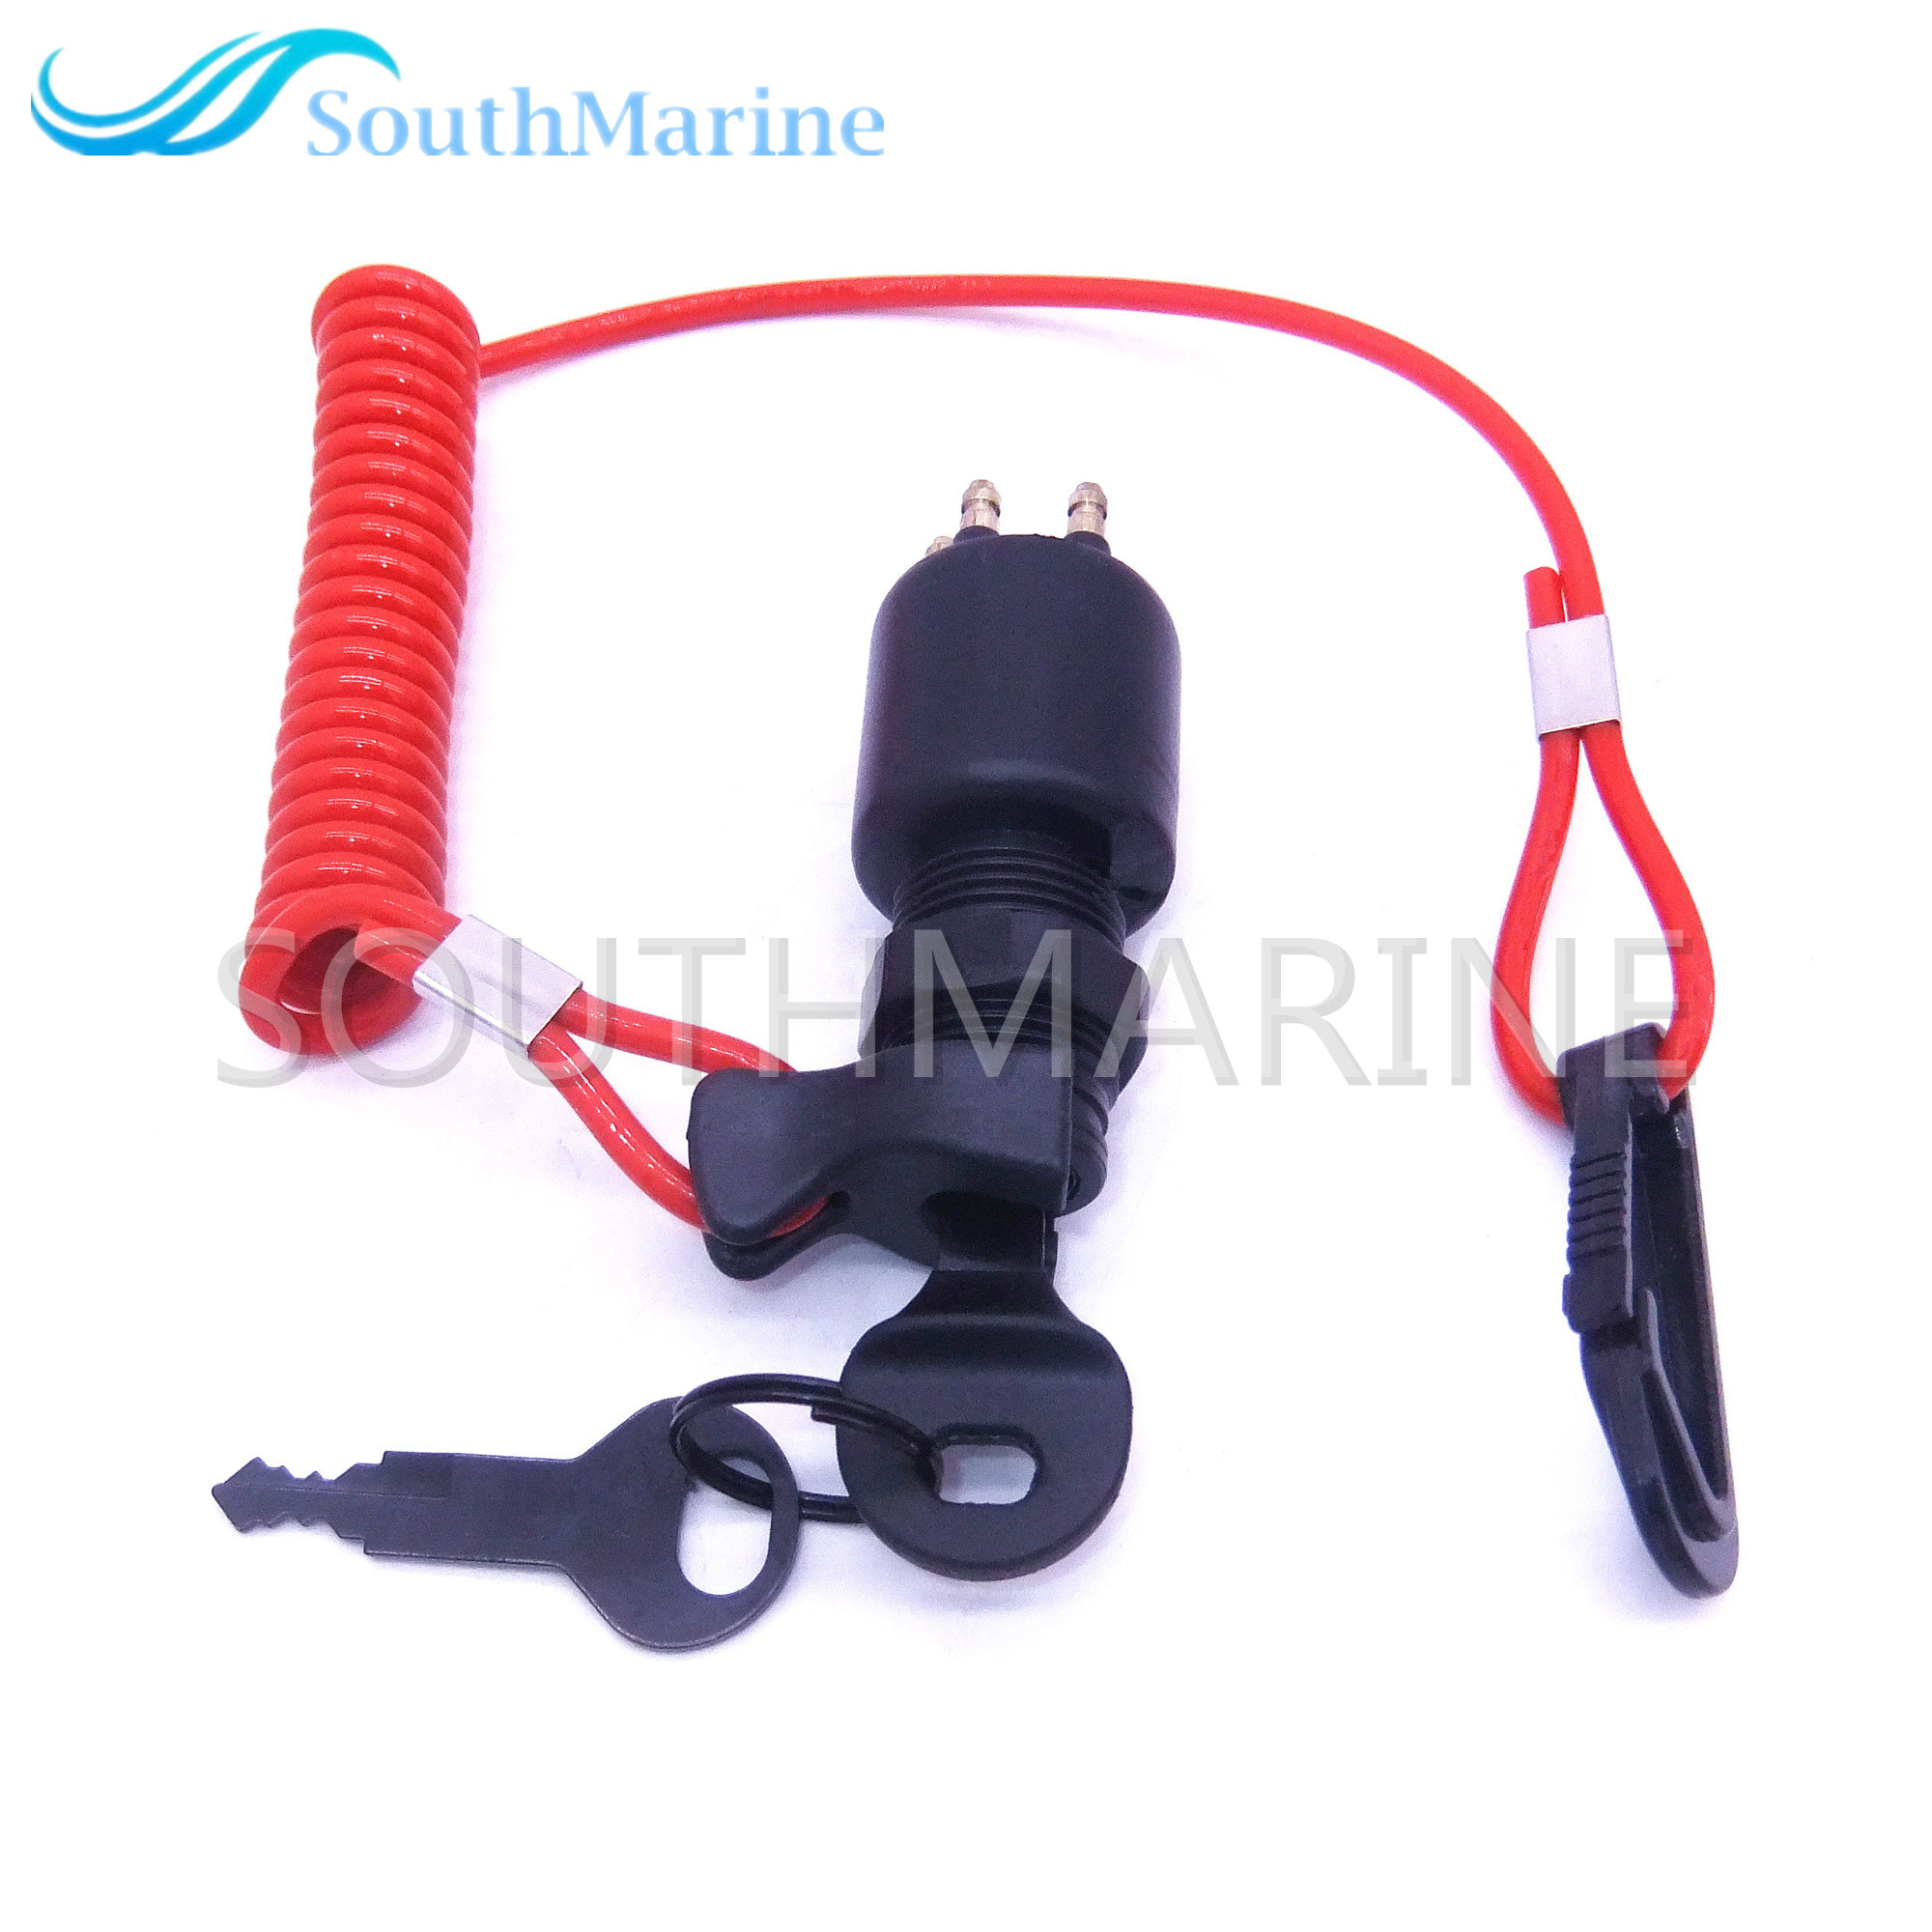 Johnson Evinrude Ignition Switch Omc 5005801 Wiring Diagram This Aftermarket Fits 40 200hp Outboard Motor Side Remote Control